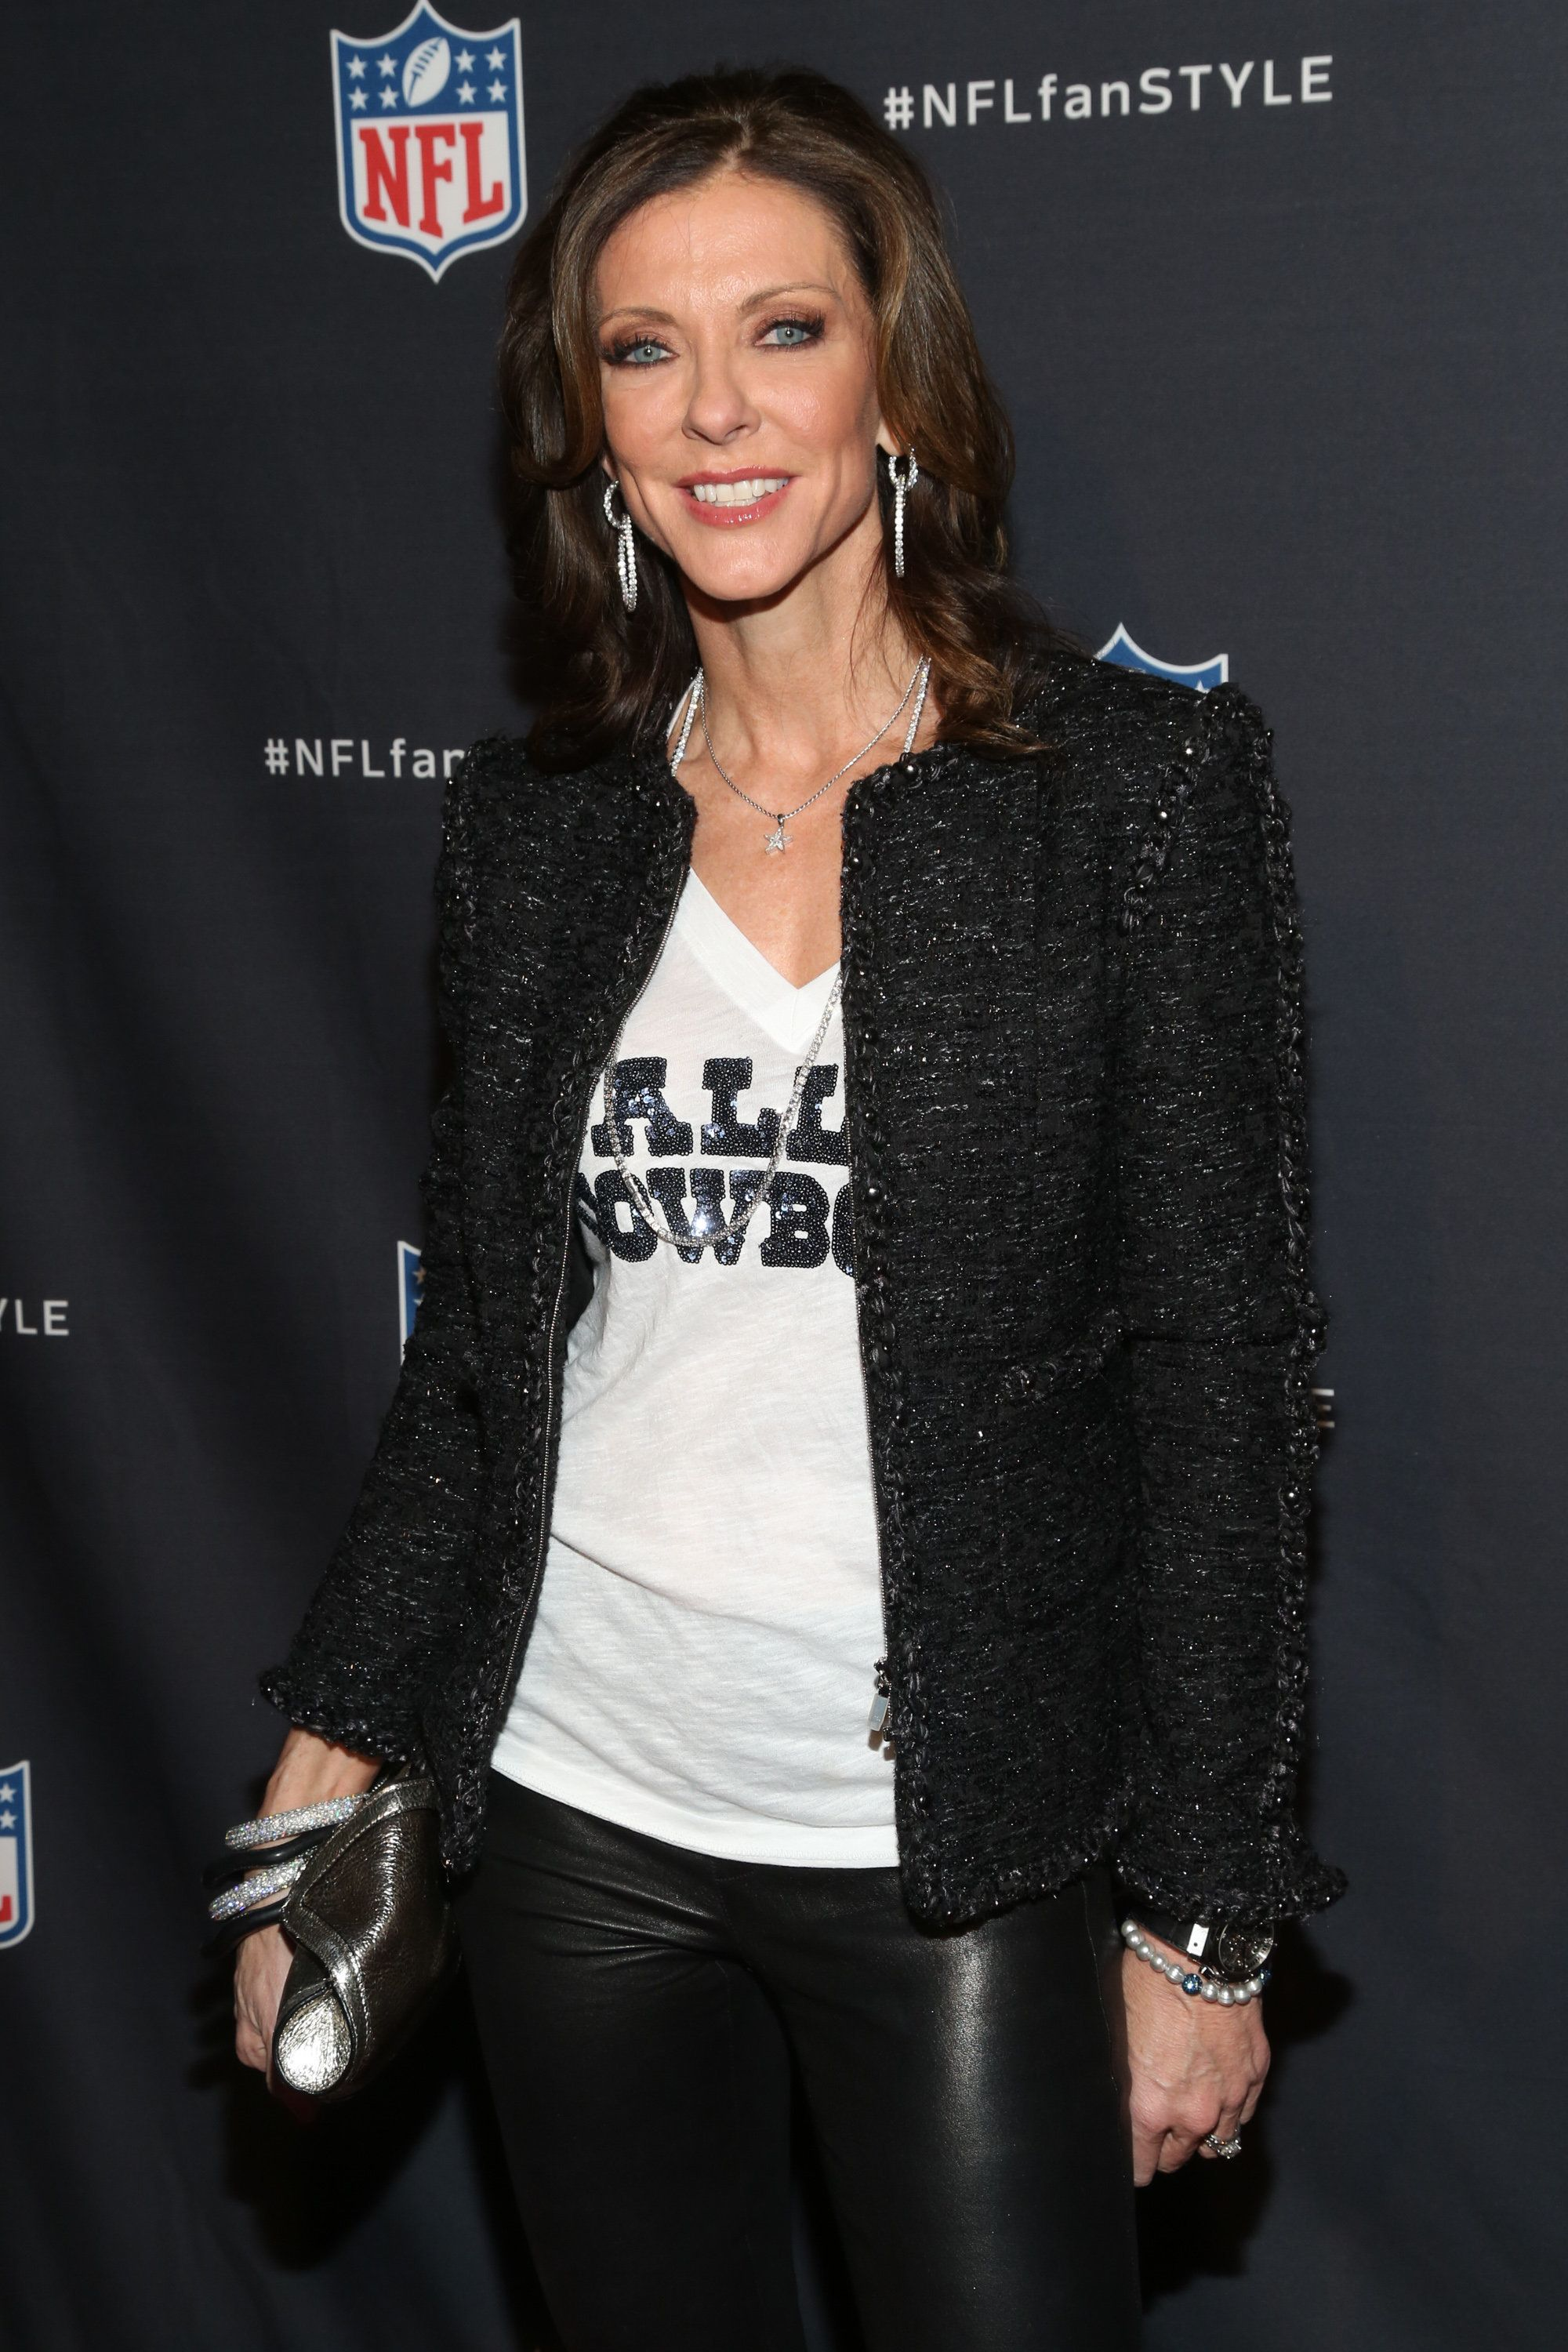 NEW YORK, NY - SEPTEMBER 16:  Dallas Cowboys Executive Vice President and Chief Brand Officer Charlotte Jones Anderson attends NFL Inaugural Hall of Fashion launch event at Pillars 37 on September 16, 2014 in New York City.  (Photo by J Carter Rinaldi/FilmMagic)